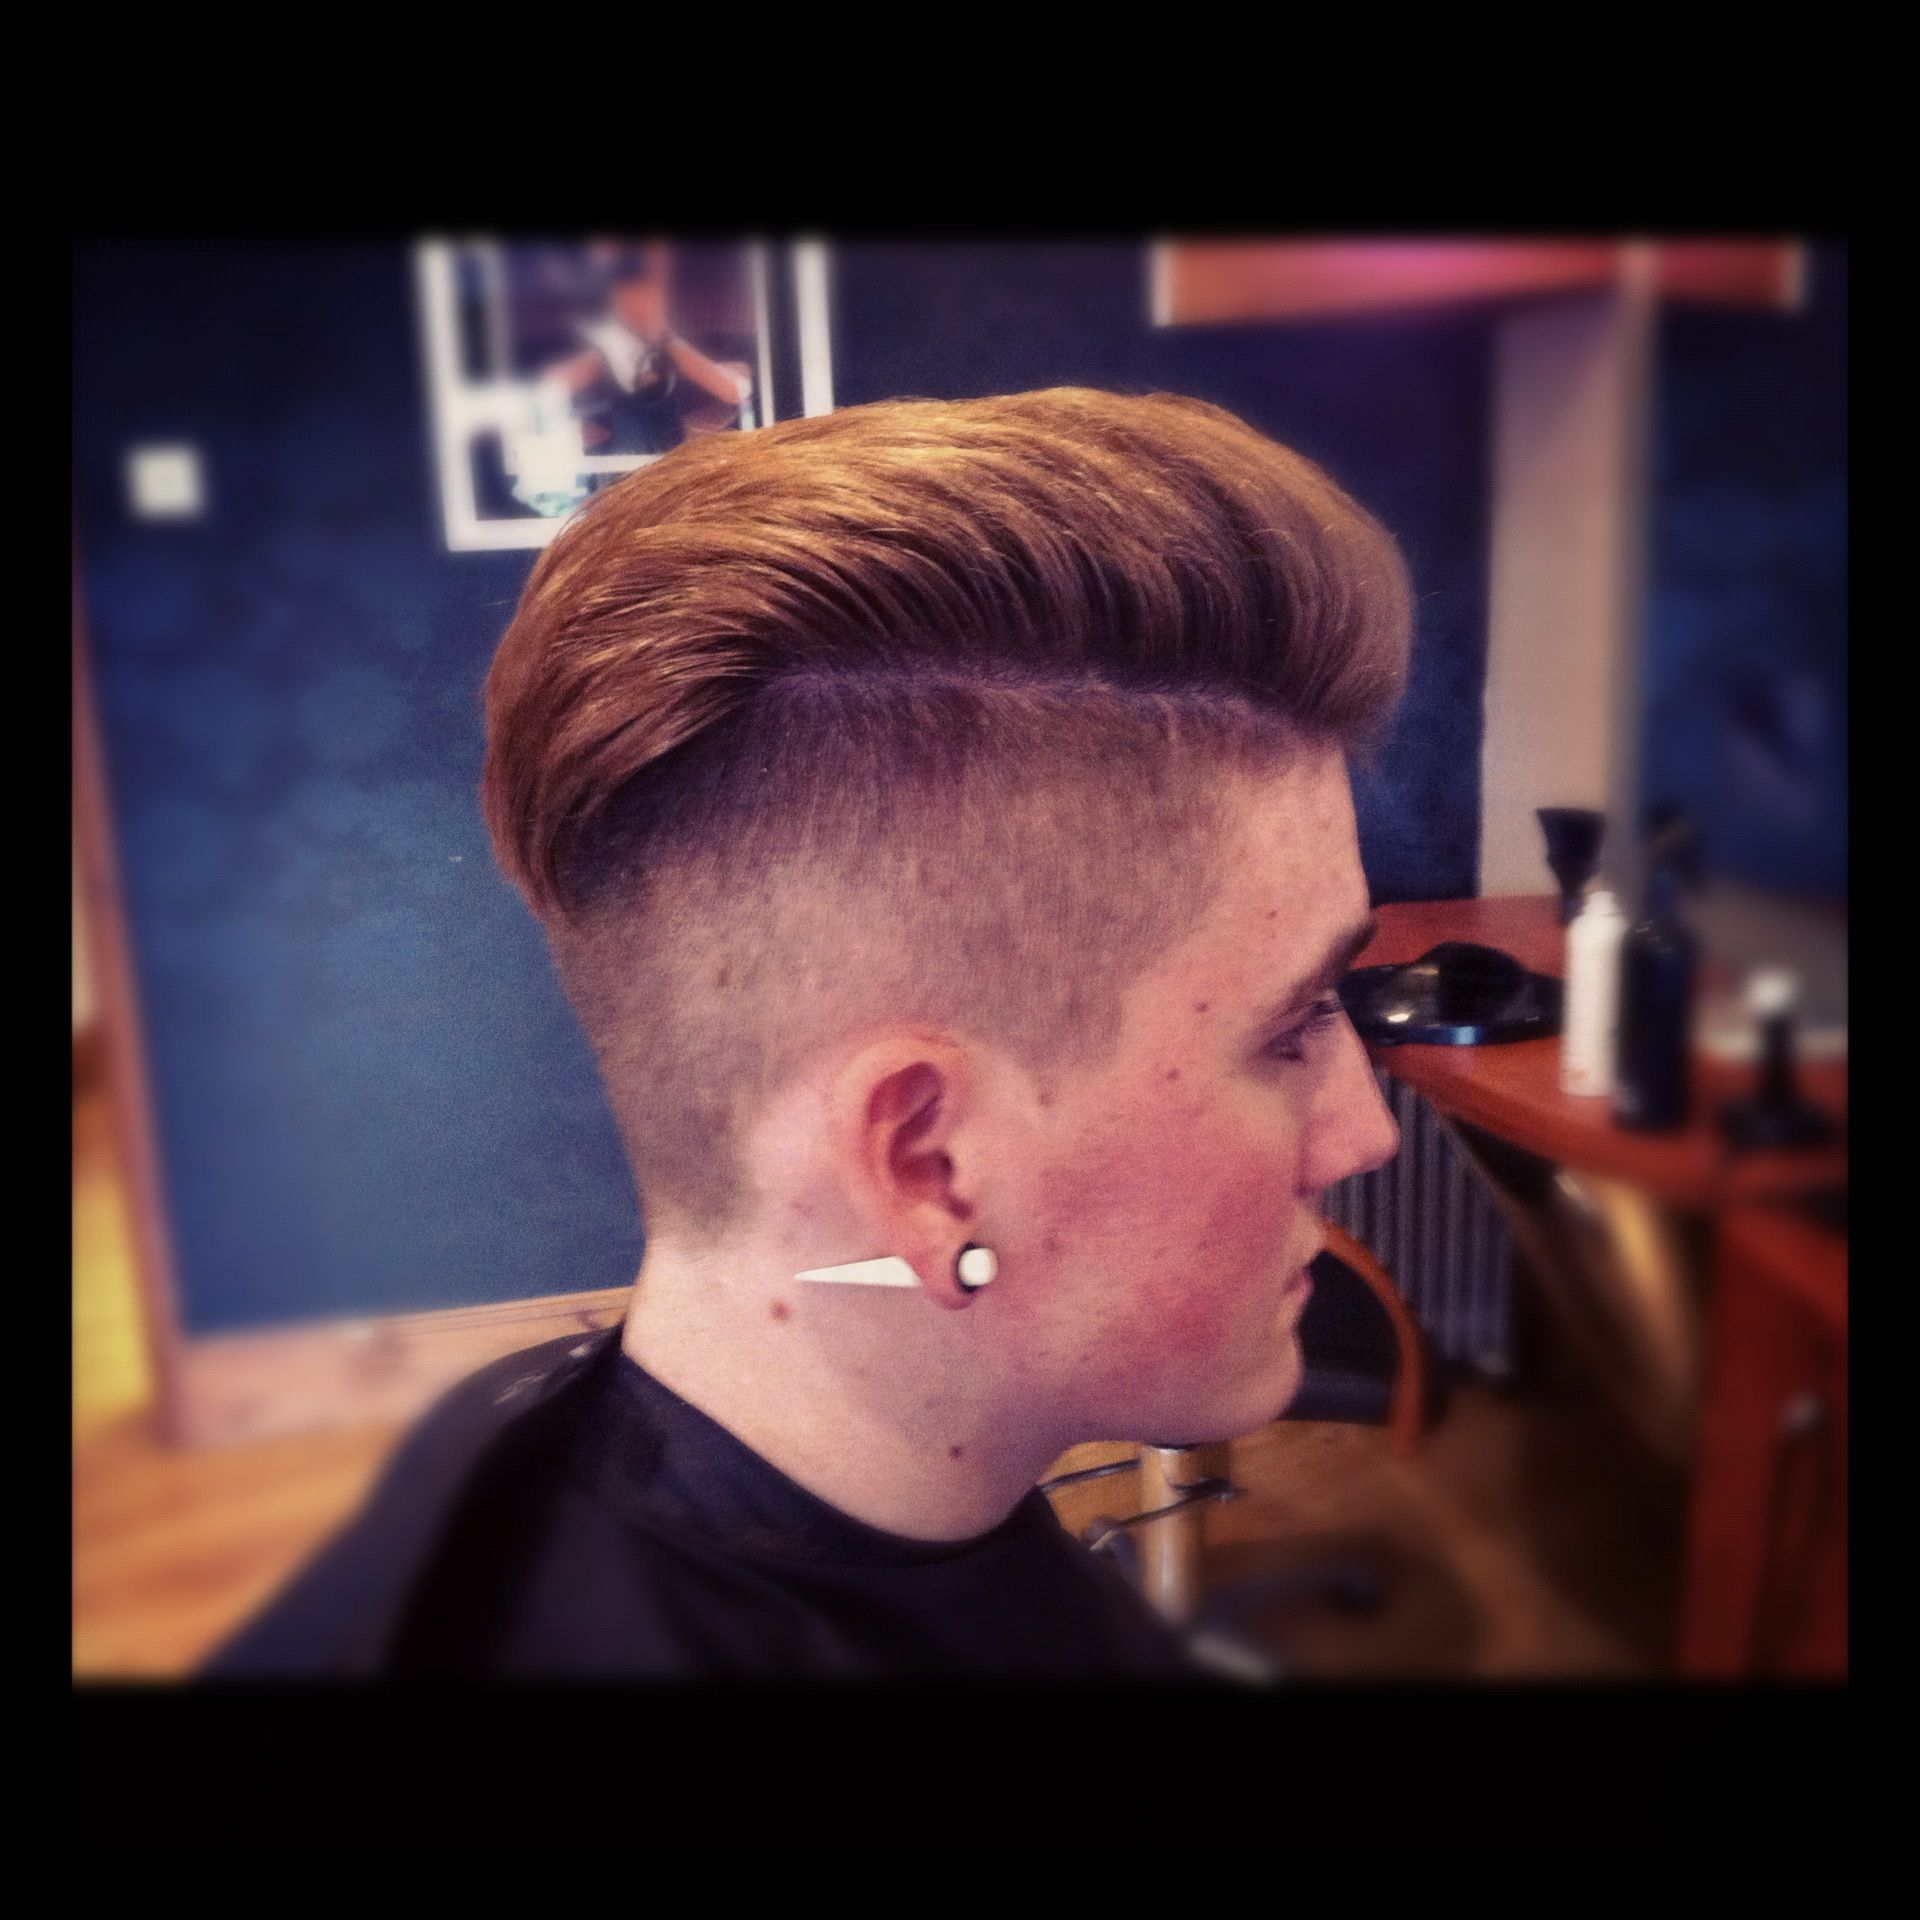 Retro UnderCut RockerBilly Say I Wont Pinterest Undercut - Mens hairstyle undercut 2012